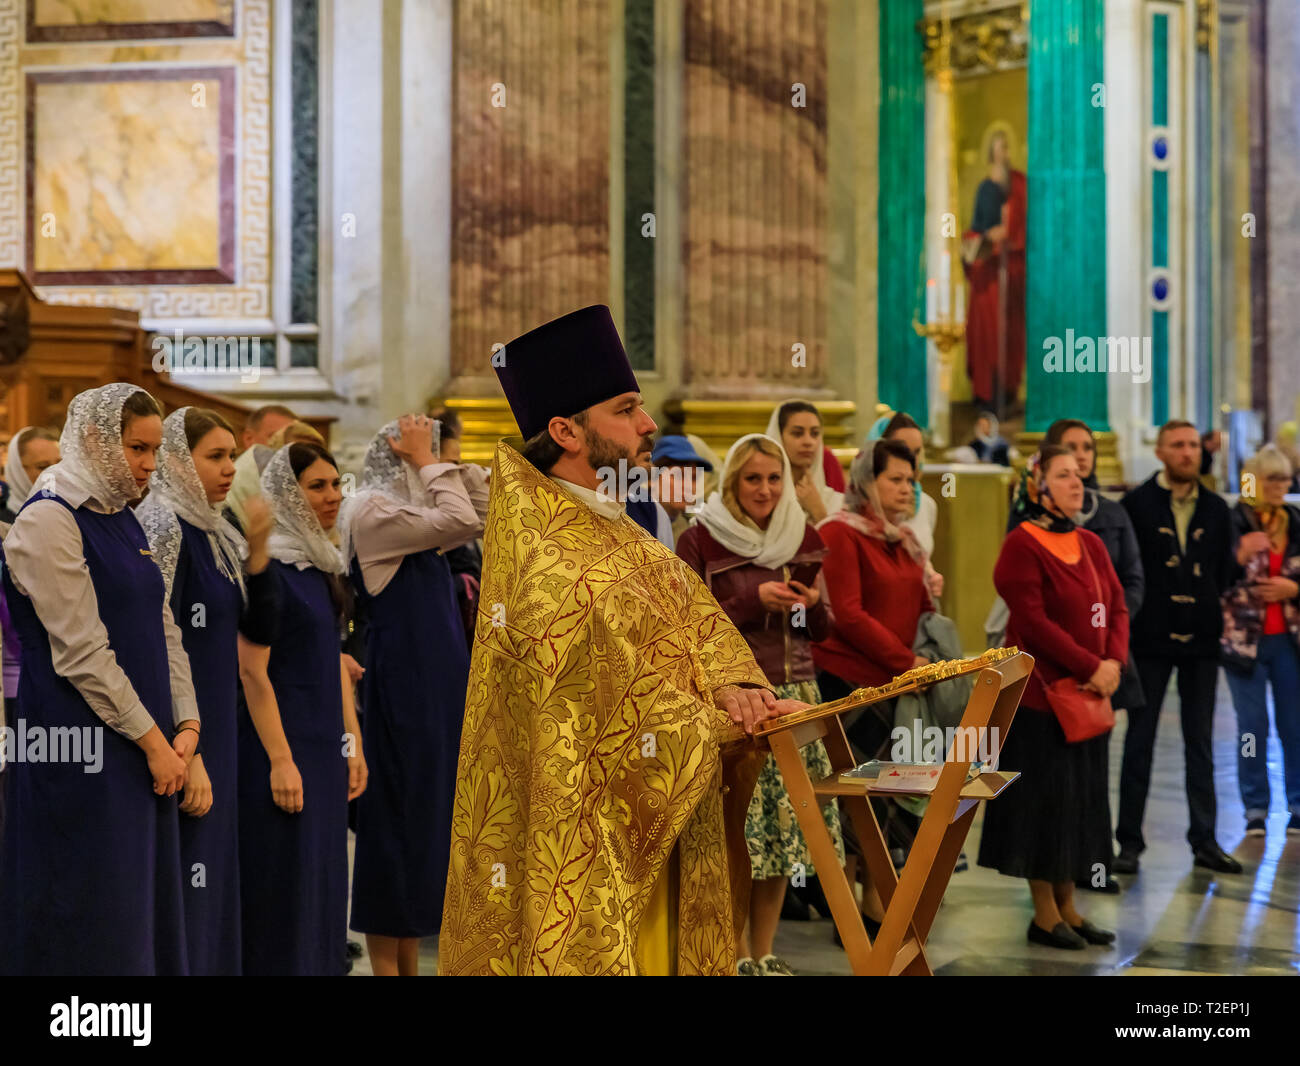 Saint Petersburg, Russia - September 10, 2017: Russian Orthodox priest in traditional clerical clothing serving mass and parishioners behind him in th - Stock Image